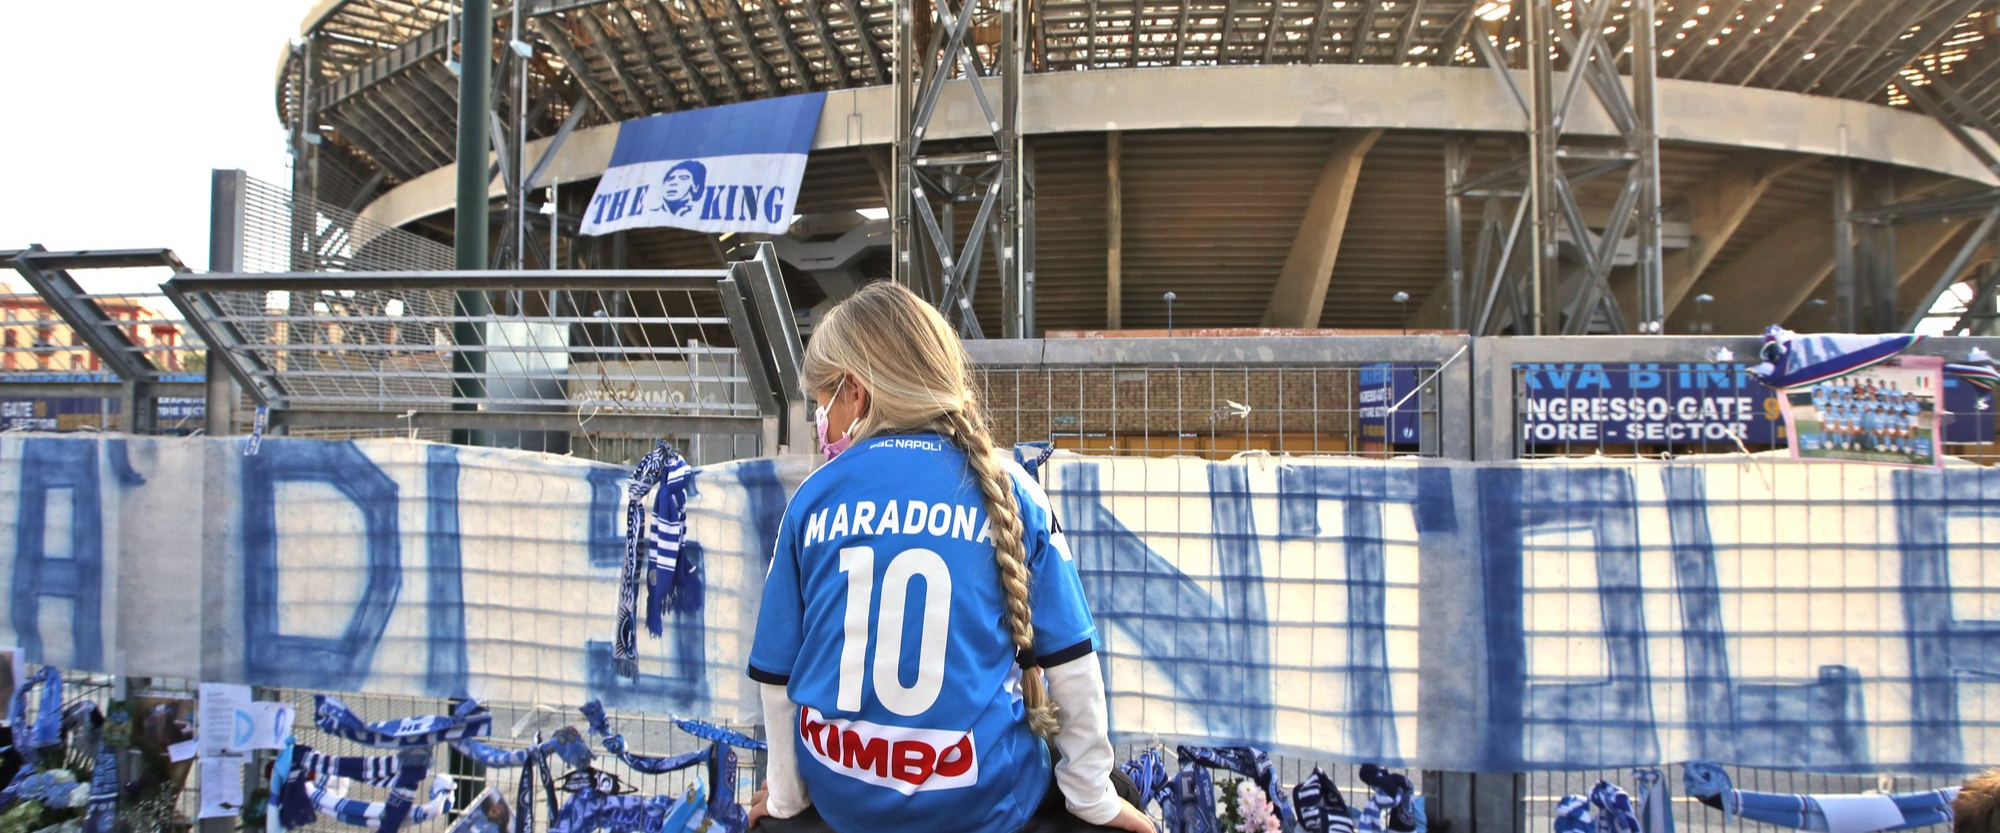 Napoli will rename its stadium after Diego Maradona